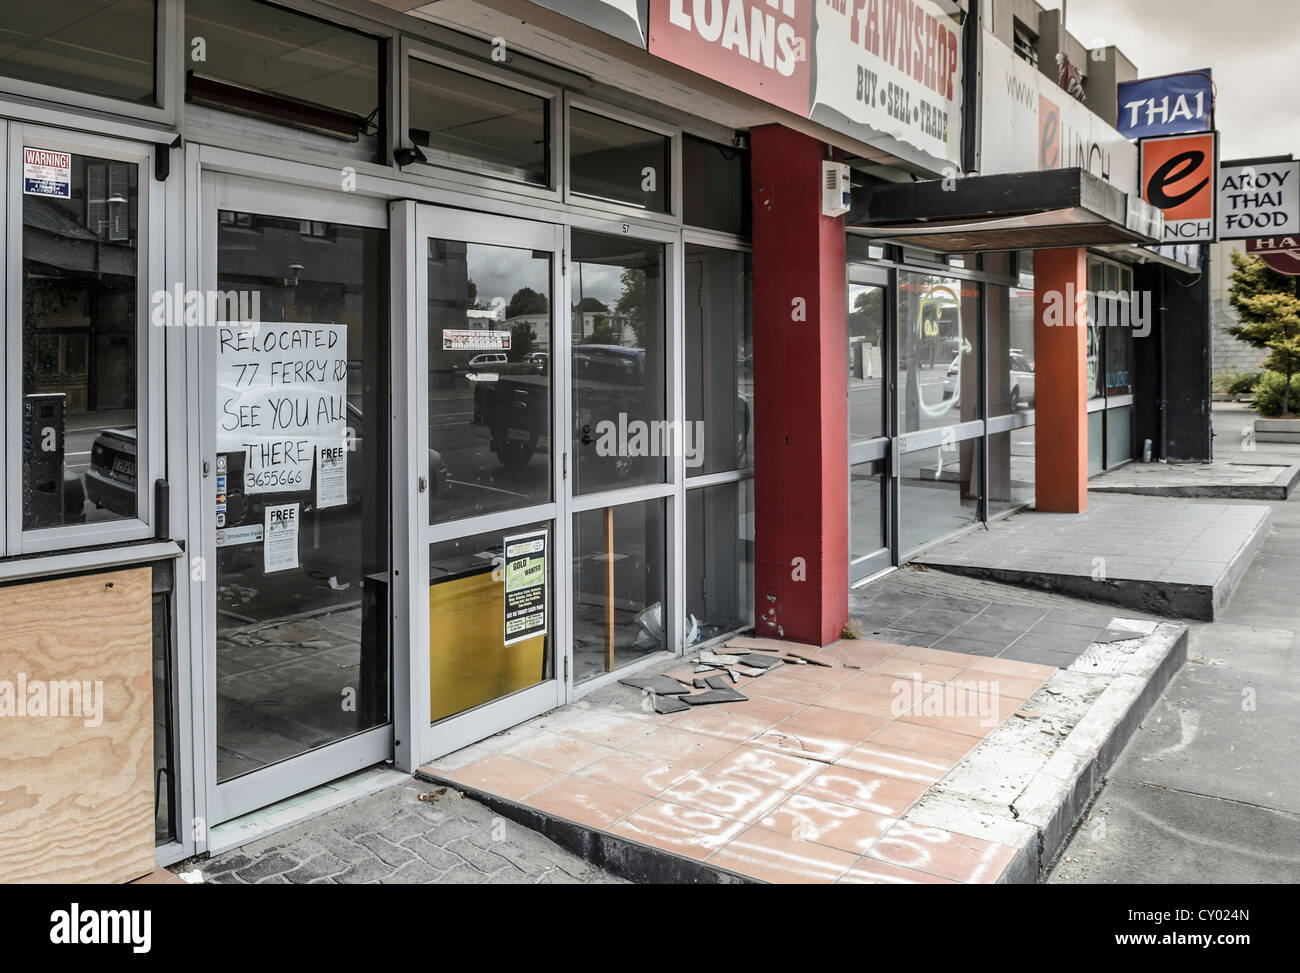 Empty shops in the evacuated CBD Red Zone, Christchurch, South Island, New Zealand Stock Photo